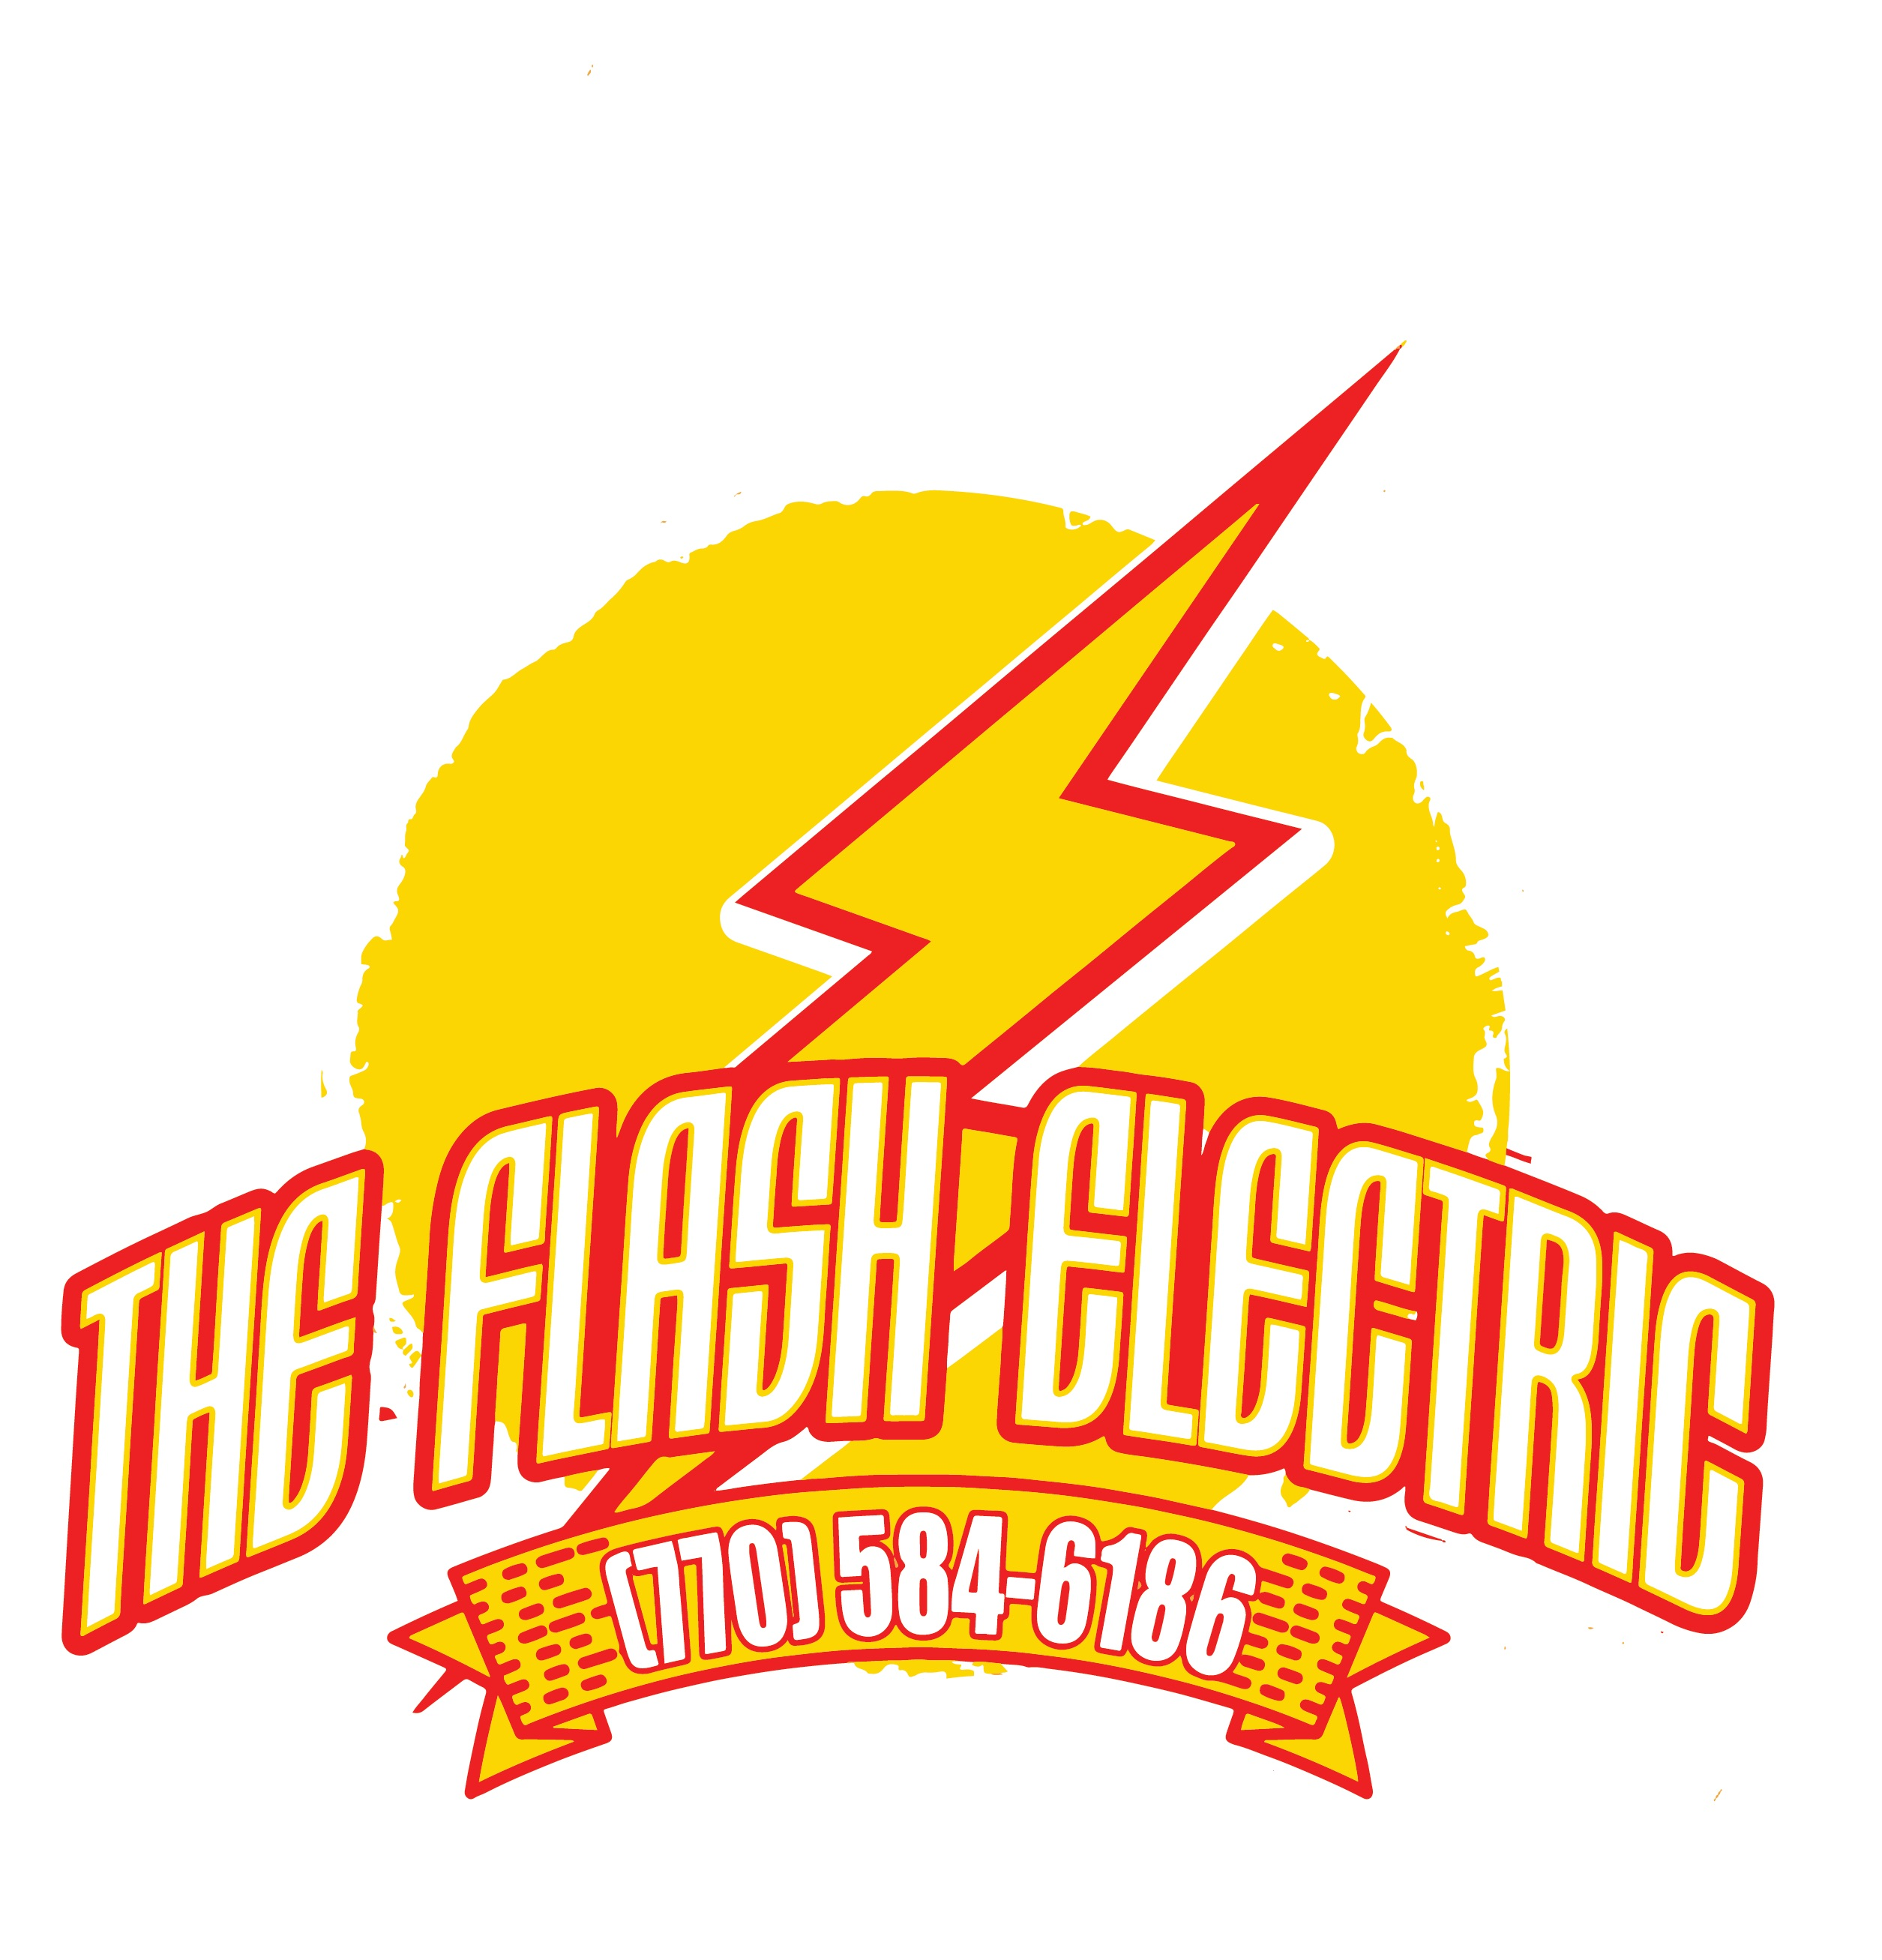 The Flash Electric